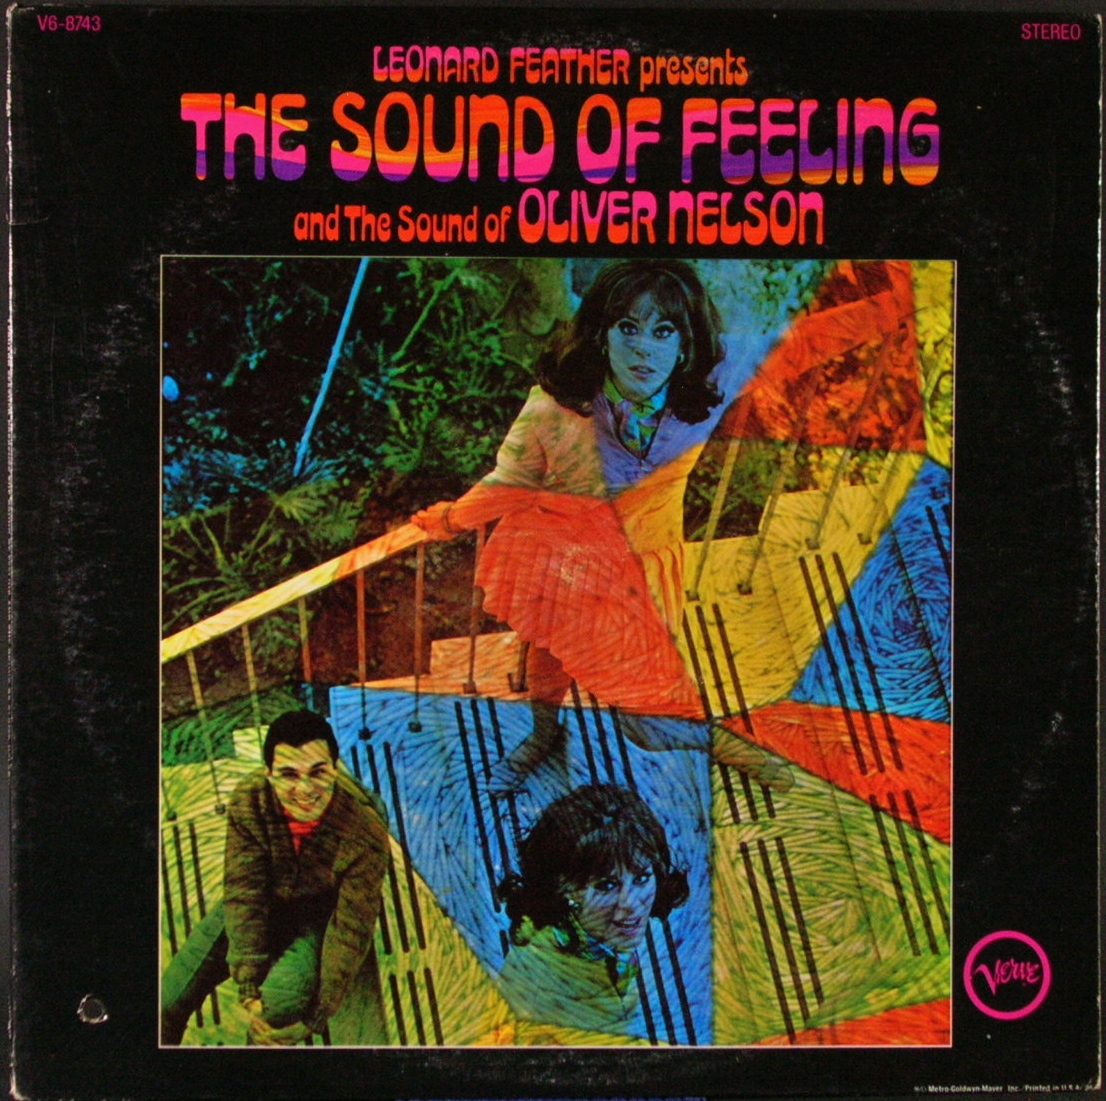 The Sound Of Feeling And The Sound Of Oliver Nelson サウンド・オブ・フィーリング、オリヴァー・ネルソン